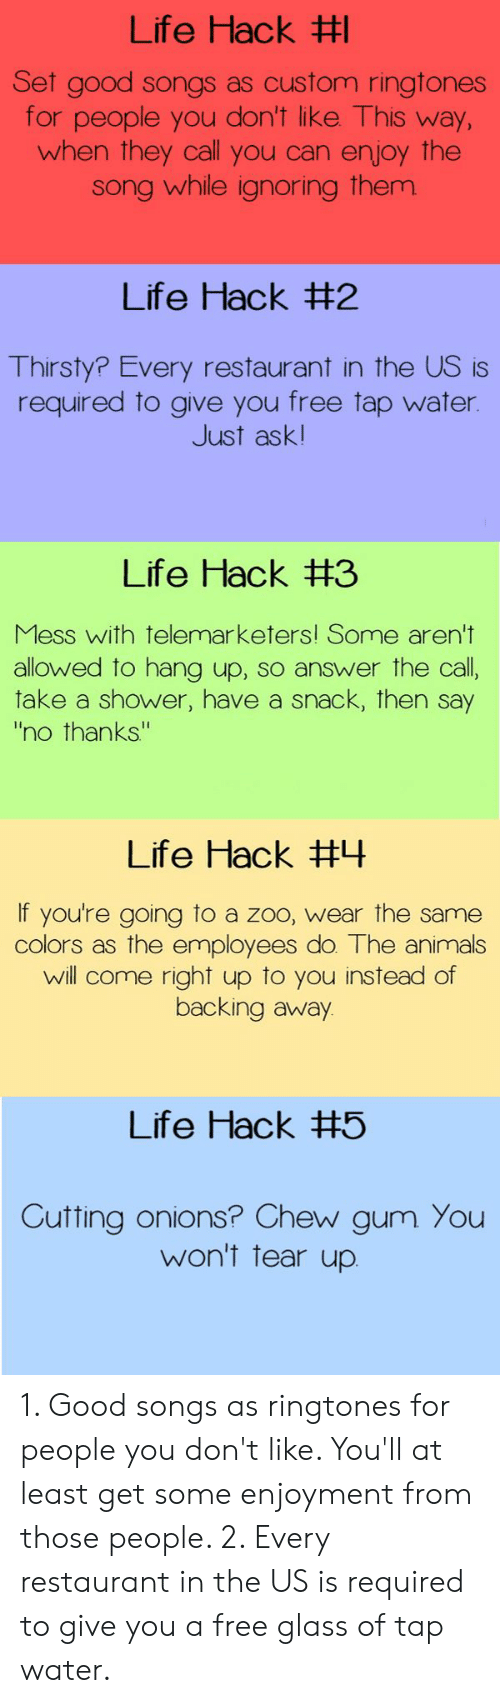 """Backing Away: Life Hack  et good songs as custom ringtones  for people you don't like This way  when they call you can enjoy the  song while ignoring them  Life Hack #2  Thirsty? Every restaurant in the US is  required to give you free tap water  Just ask!  Life Hack #3  Mess with telemarketers! Some aren't  allowed to hang up, so answer the call  take a shower, have a snack, then say  no thanks""""  Life Hack #나  If you're going to a zoo, wear the same  colors as the employees do. The animals  will come right up to you instead of  backing away  Life Hack #5  Cutting onions? Chew gum You  won't tear up 1. Good songs as ringtones for people you don't like. You'll at least get some enjoyment from those people. 2. Every restaurant in the US is required to give you a free glass of tap water."""